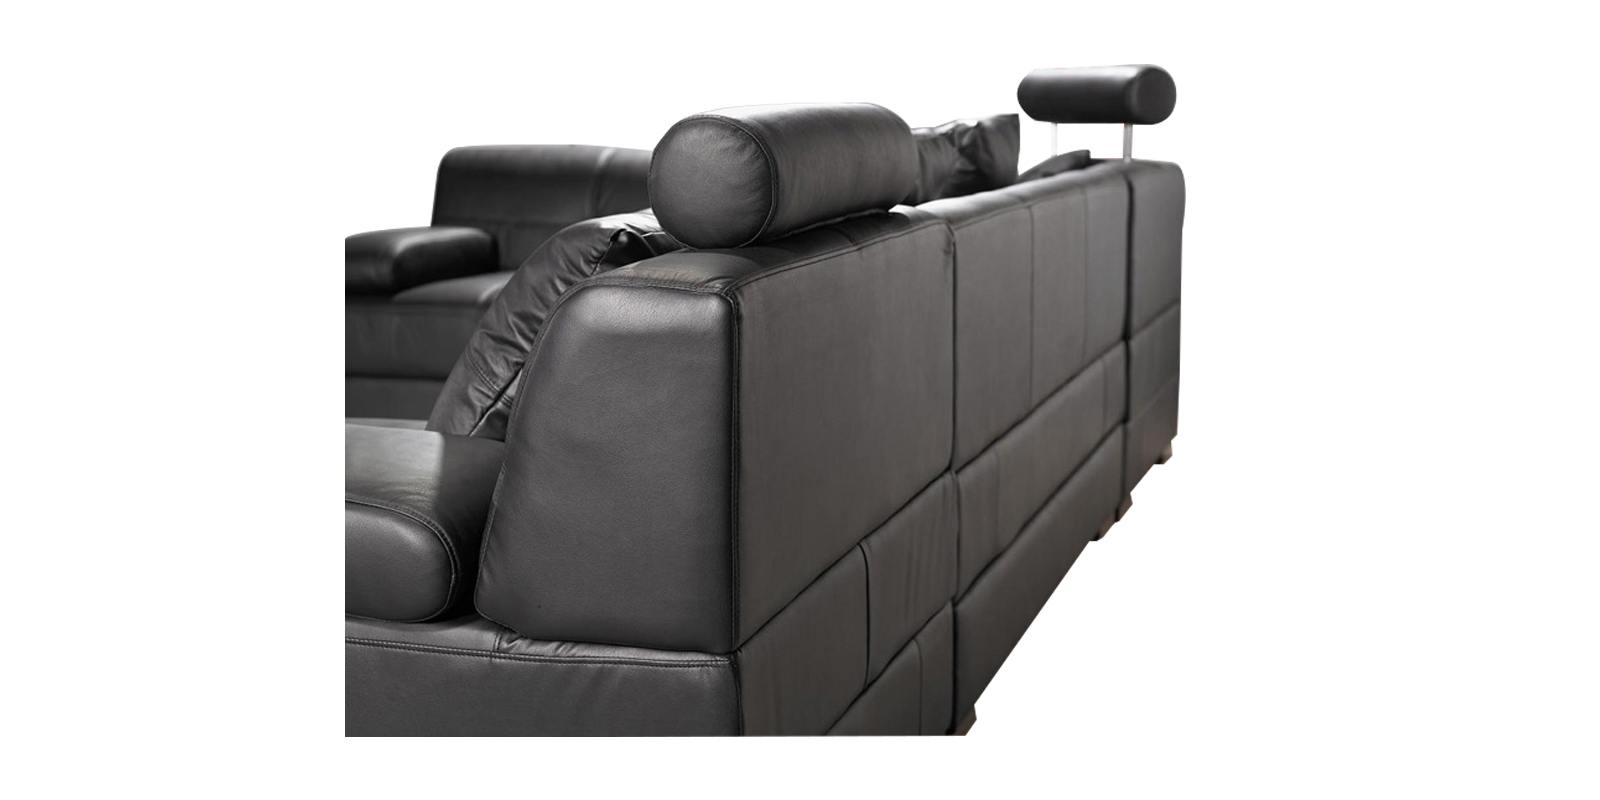 Astounding Fave Corner Sofa In Black Colour Evergreenethics Interior Chair Design Evergreenethicsorg